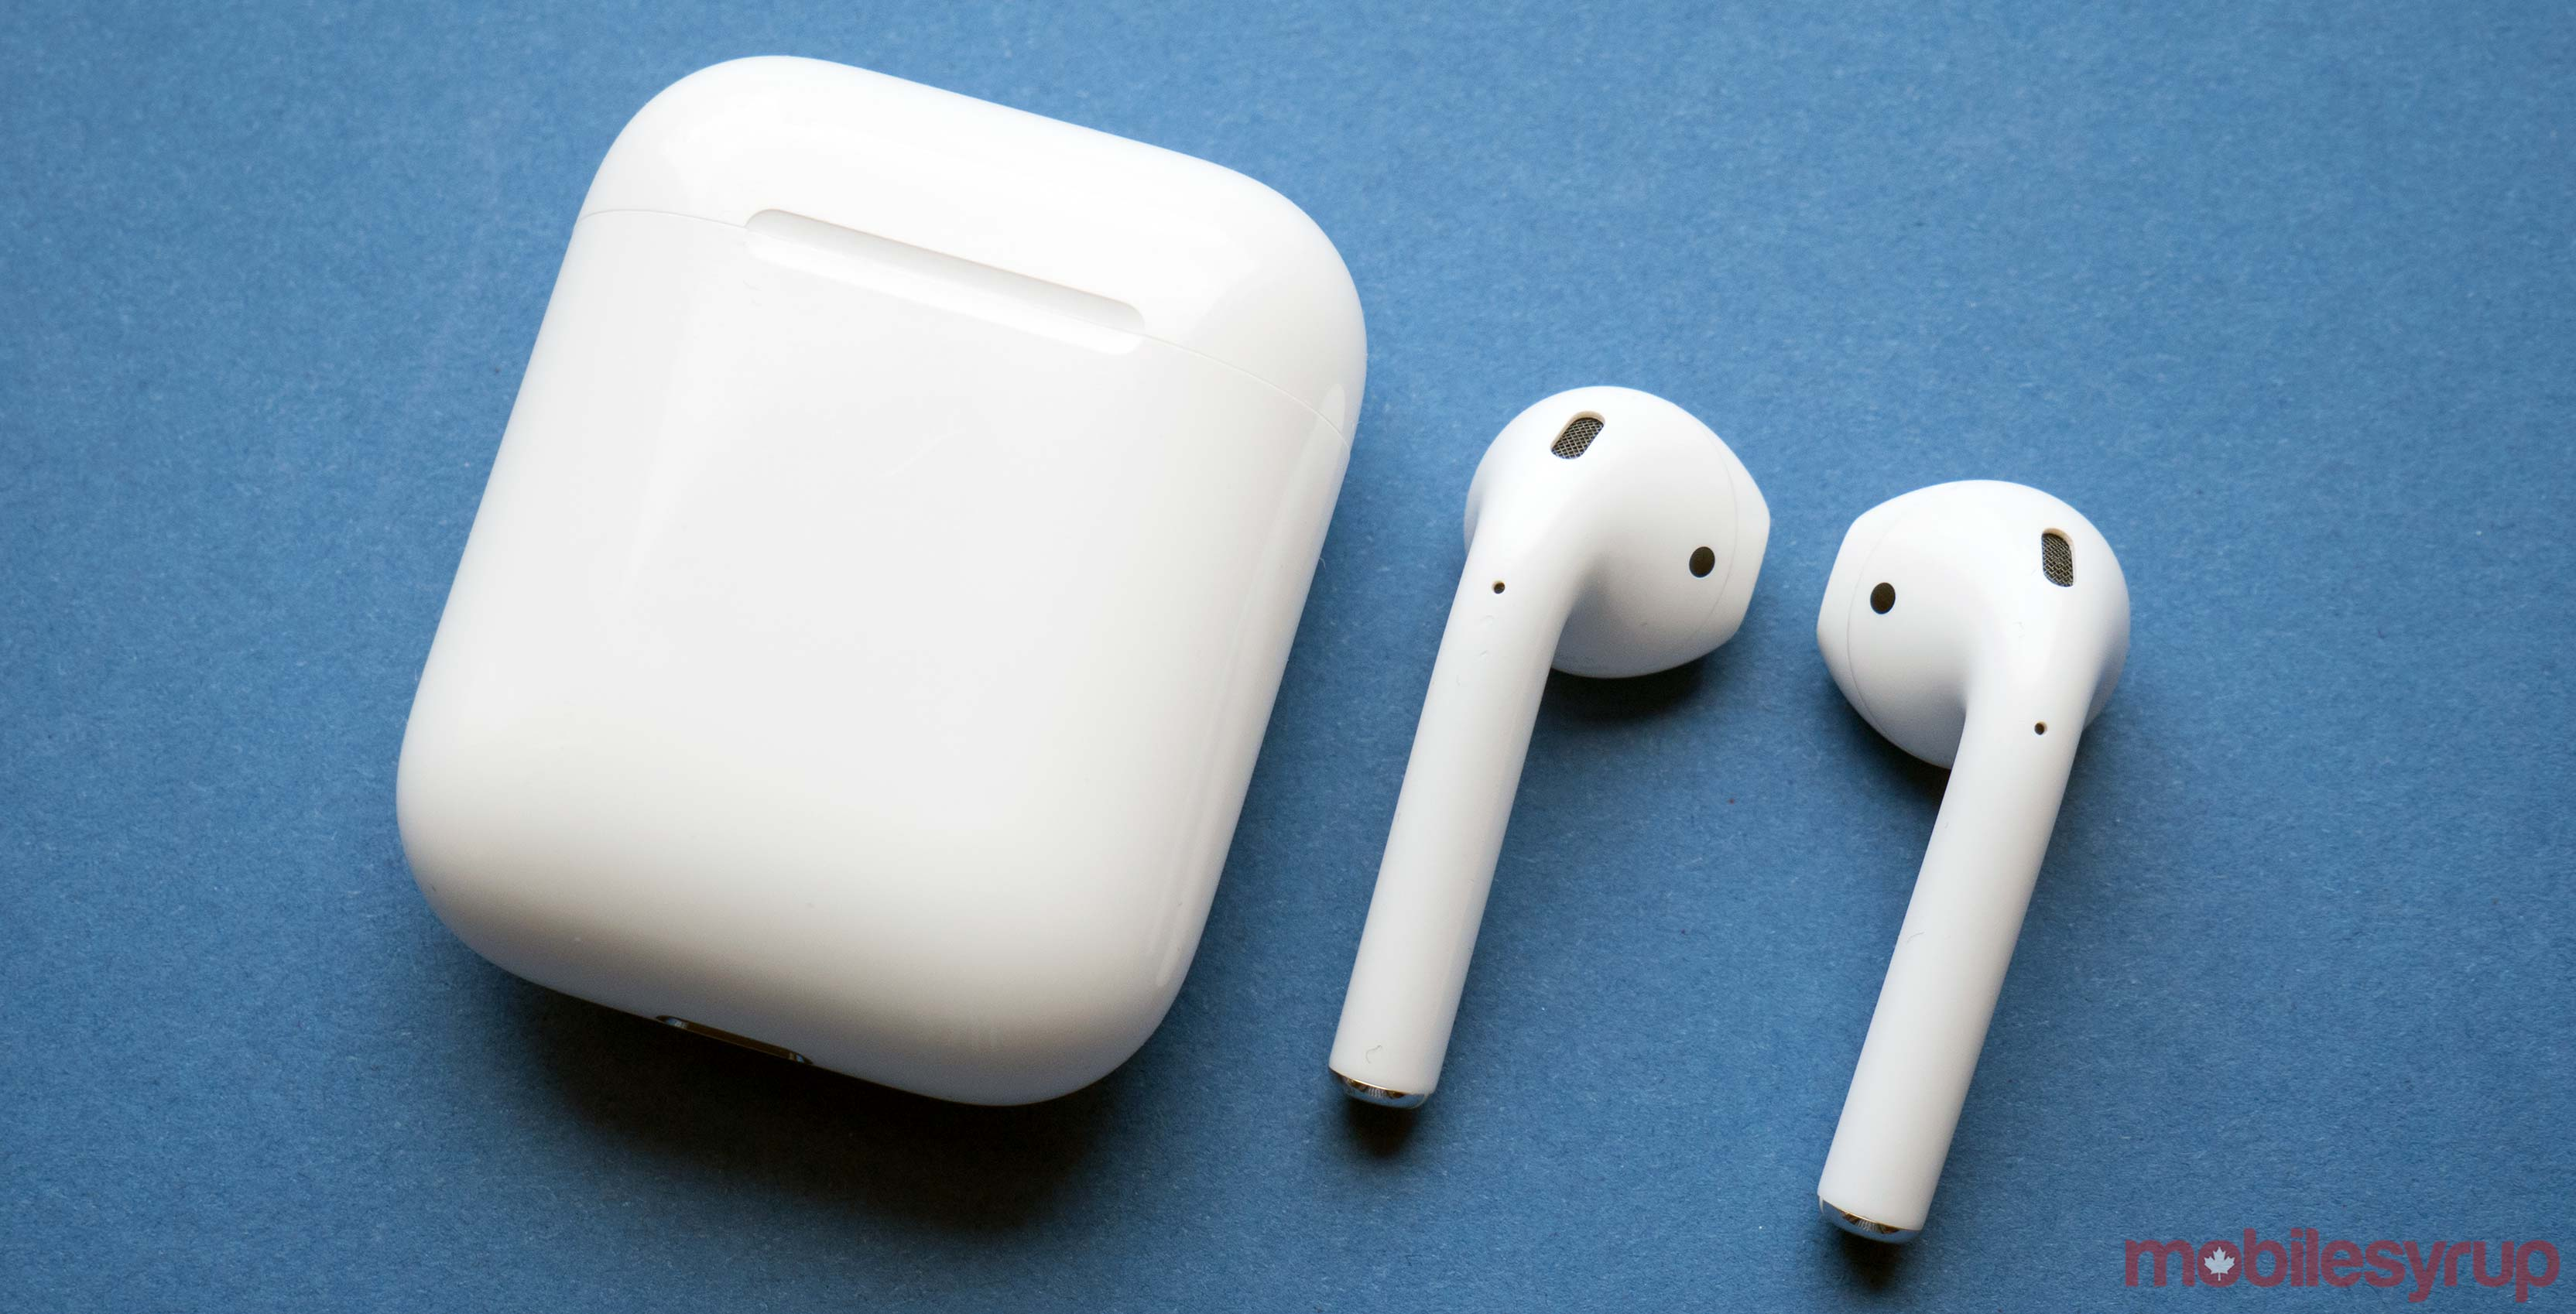 Amazon Building Airpods Competitor Airpods 3 To Be Waterproof Report